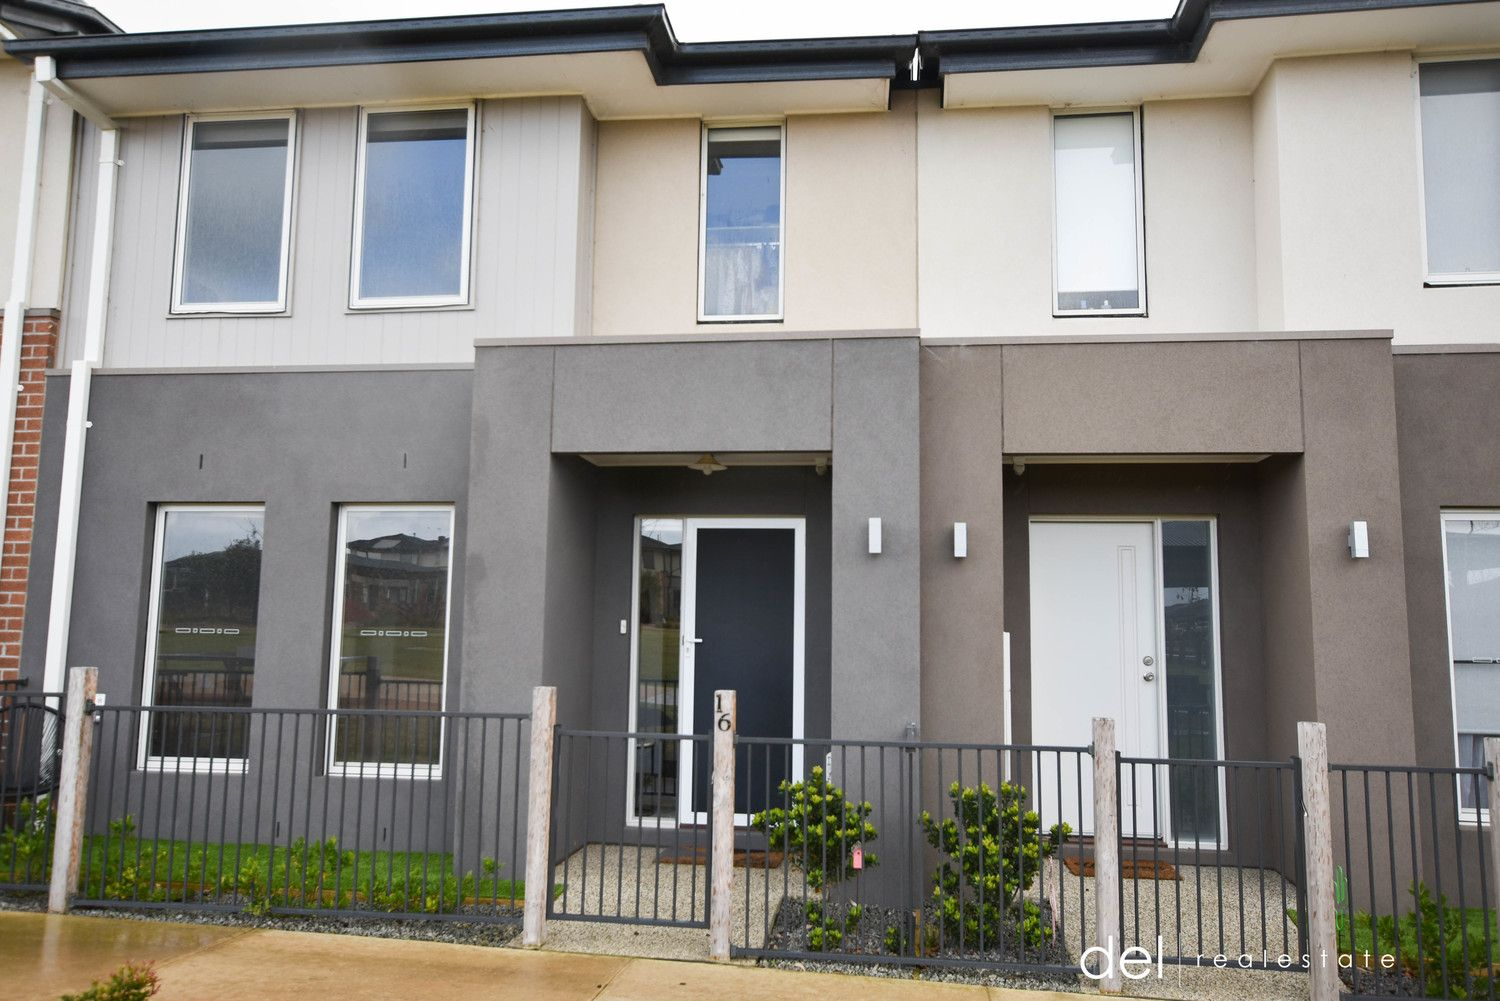 16 Honeybrook Lane, Clyde VIC 3978 - Townhouse For Rent